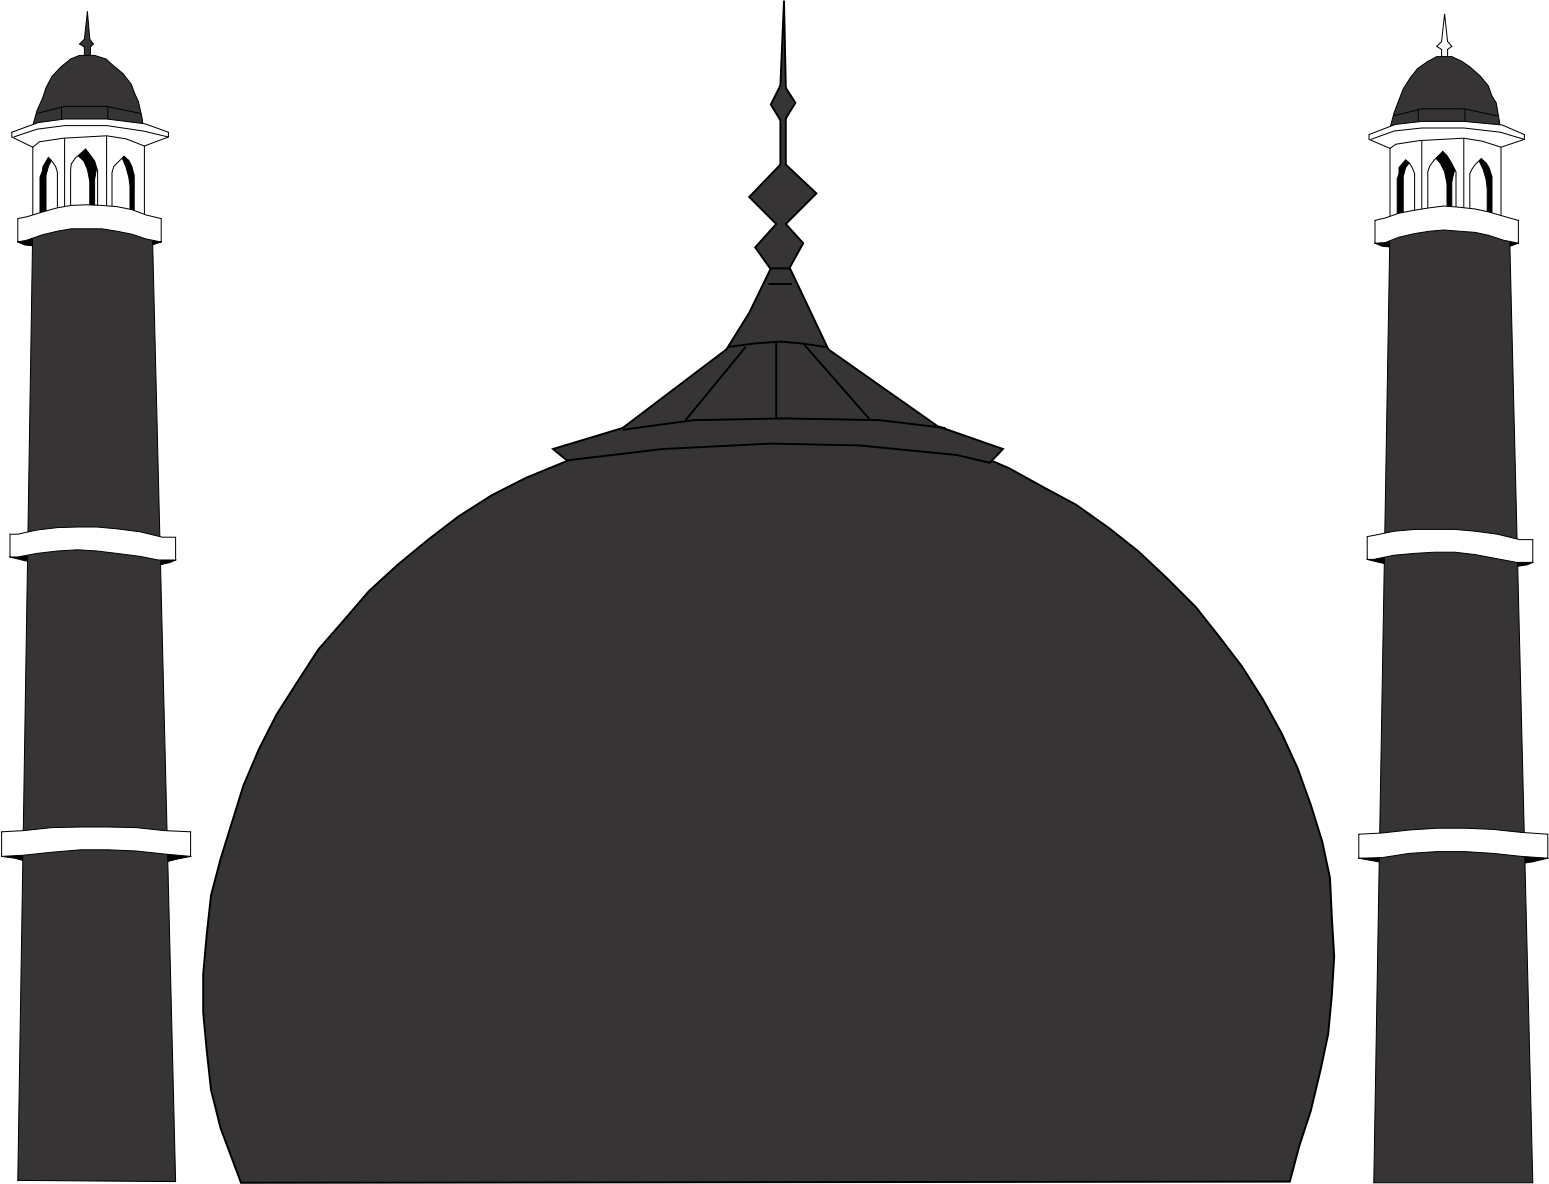 Mosque outline